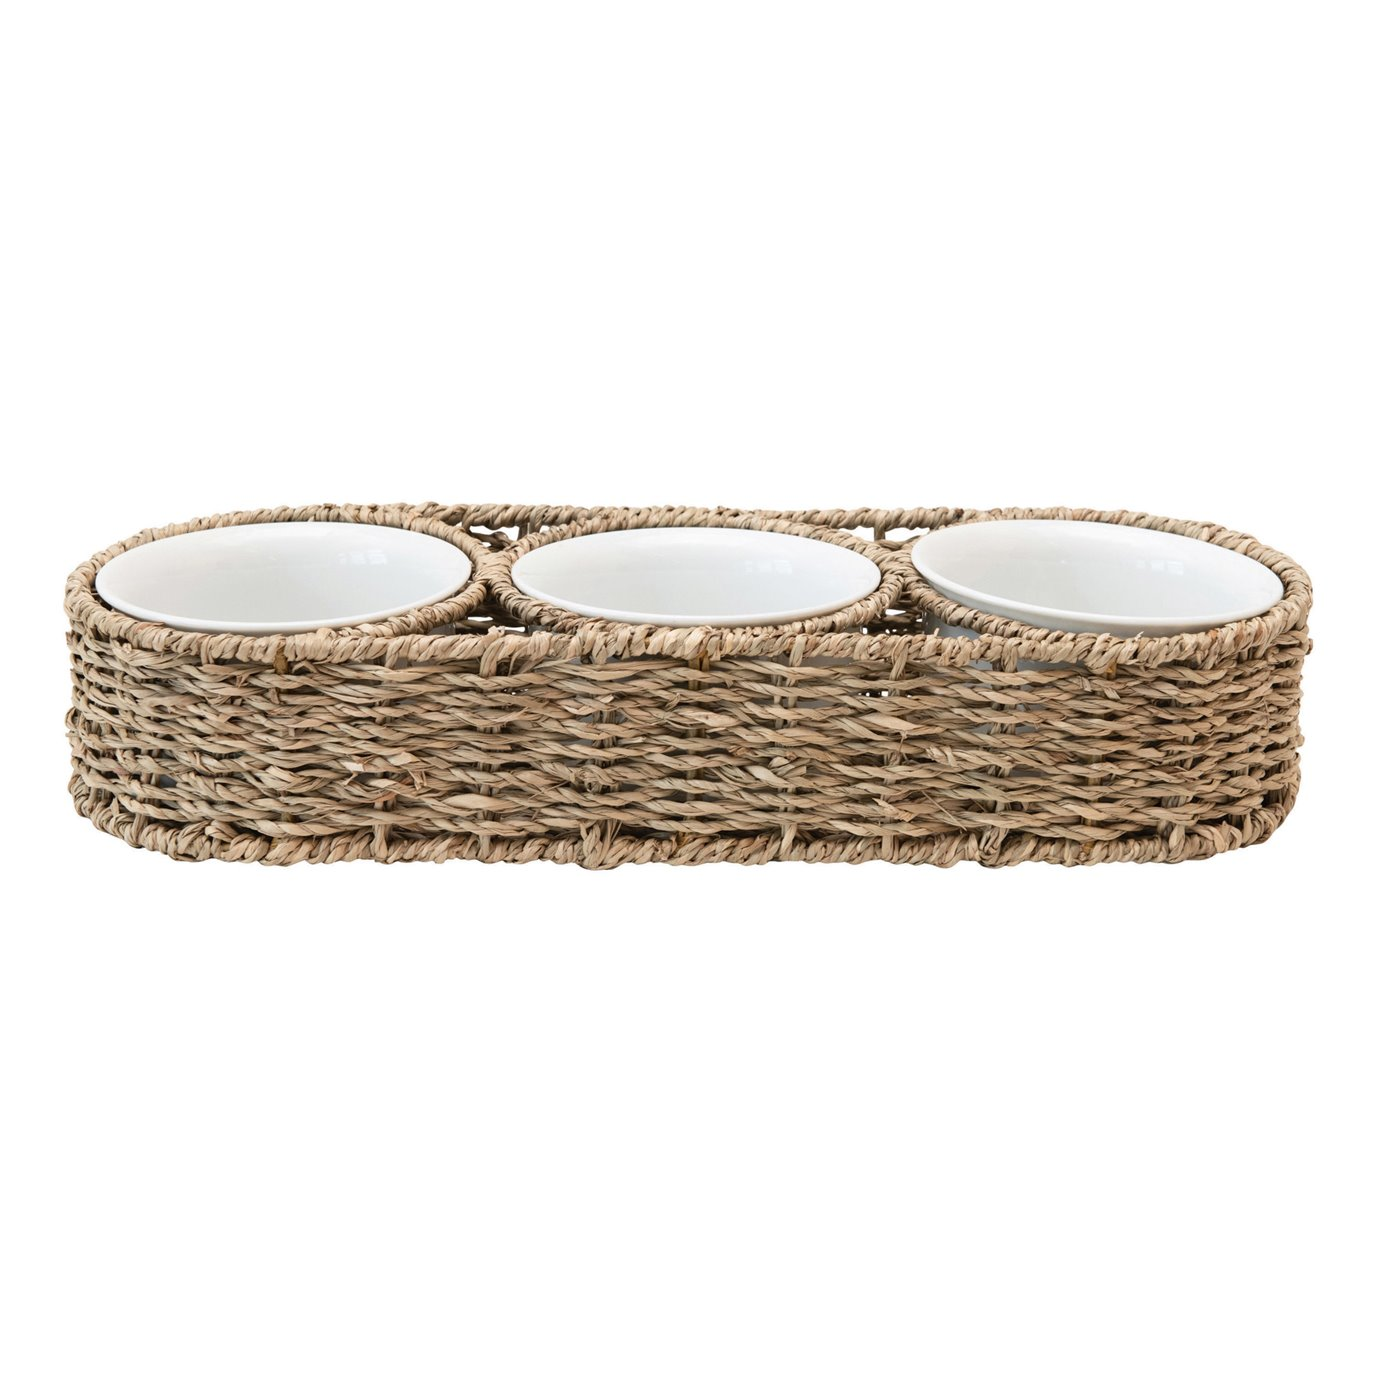 Hand-Woven Seagrass Basket with 6 oz. Ceramic Bowls, Set of 4